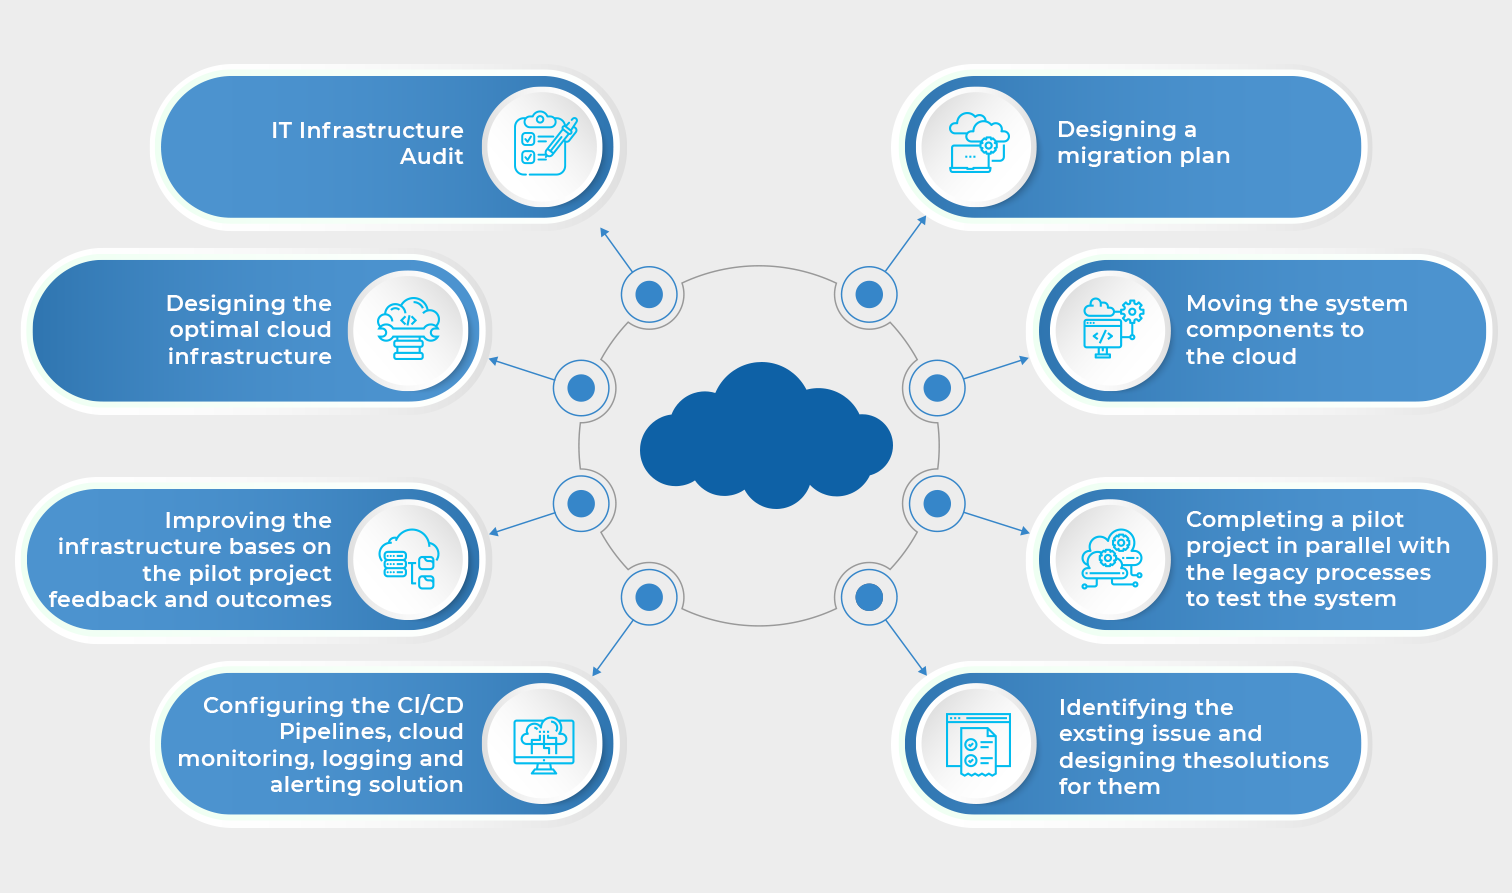 Fast-track Azure Cloud Migration with Minimal Disruption